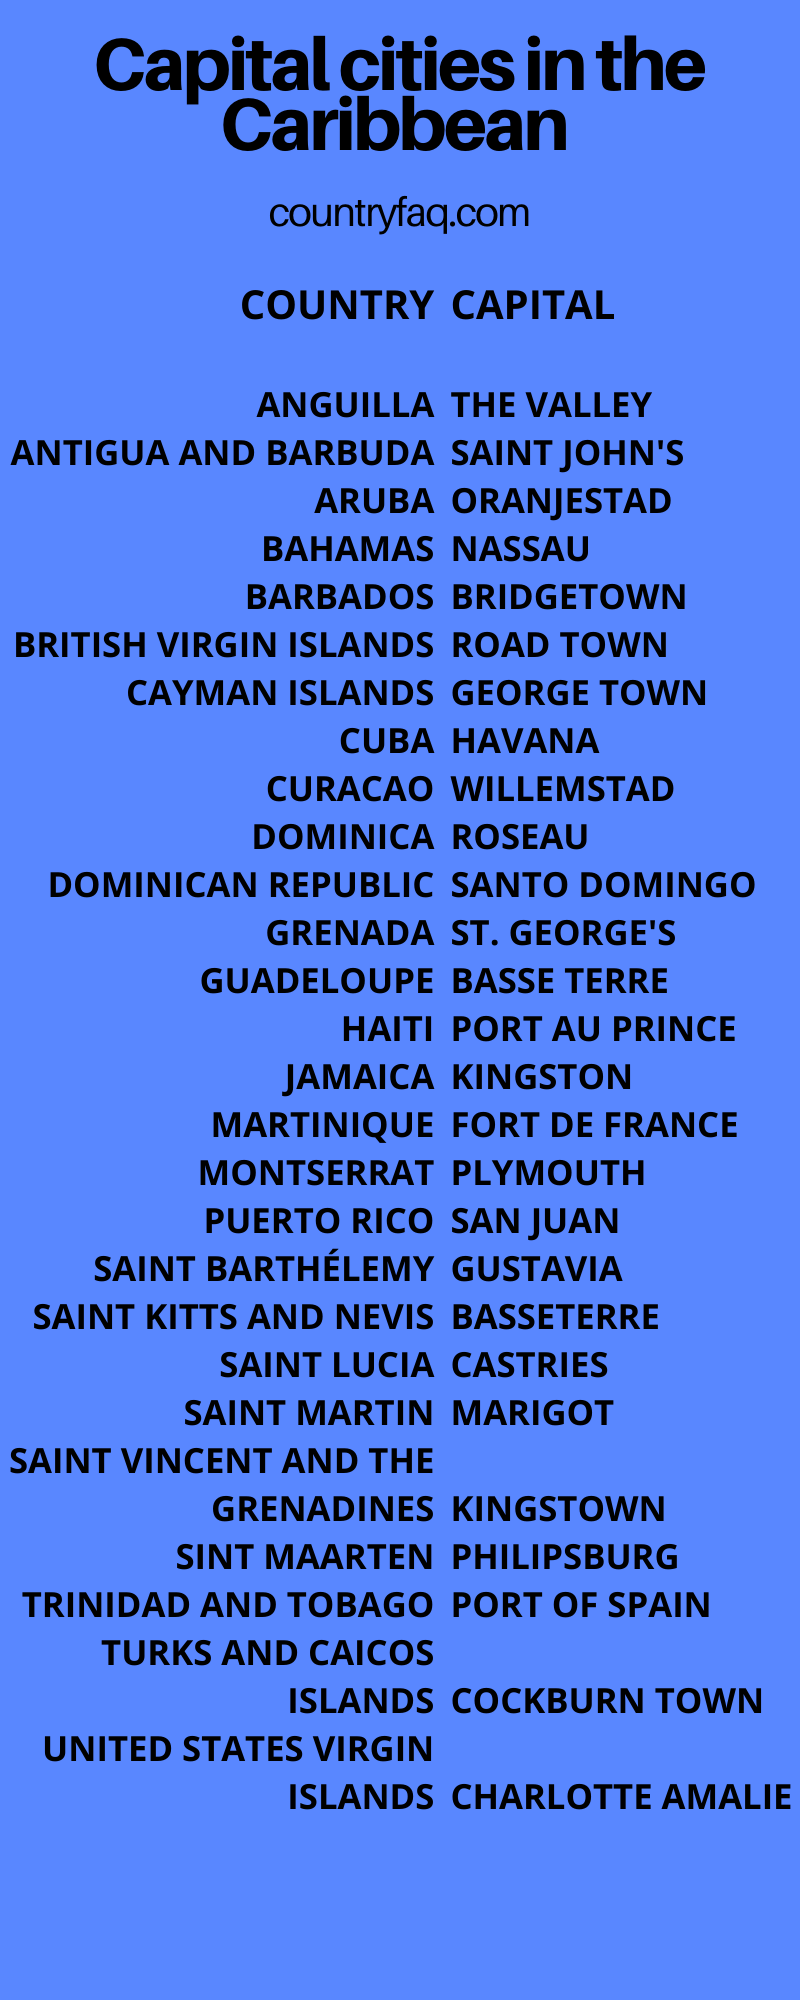 list of caribbean countries in alphabetical order caribbean countries in alphabetical order caribbean countries list alphabetical caribbean islands list alphabetical caribbean countries alphabetical order list of caribbean islands in alphabetical order alphabetical list of caribbean islands list of caribbean countries and capitals caribbean countries and capitals caribbean islands capitals map of the caribbean with capitals caribbean countries capitals caribbean countries and their capitals caribbean netherlands capital caricom countries and their capitals caribbean countries and capitals map caribbean islands and their capitals spanish speaking countries in the caribbean and their capitals caribbean islands map with capitals caribbean states and capitals all caribbean countries and their capitals list of caribbean countries and their capitals lesser antilles capital caribbean countries and their capital